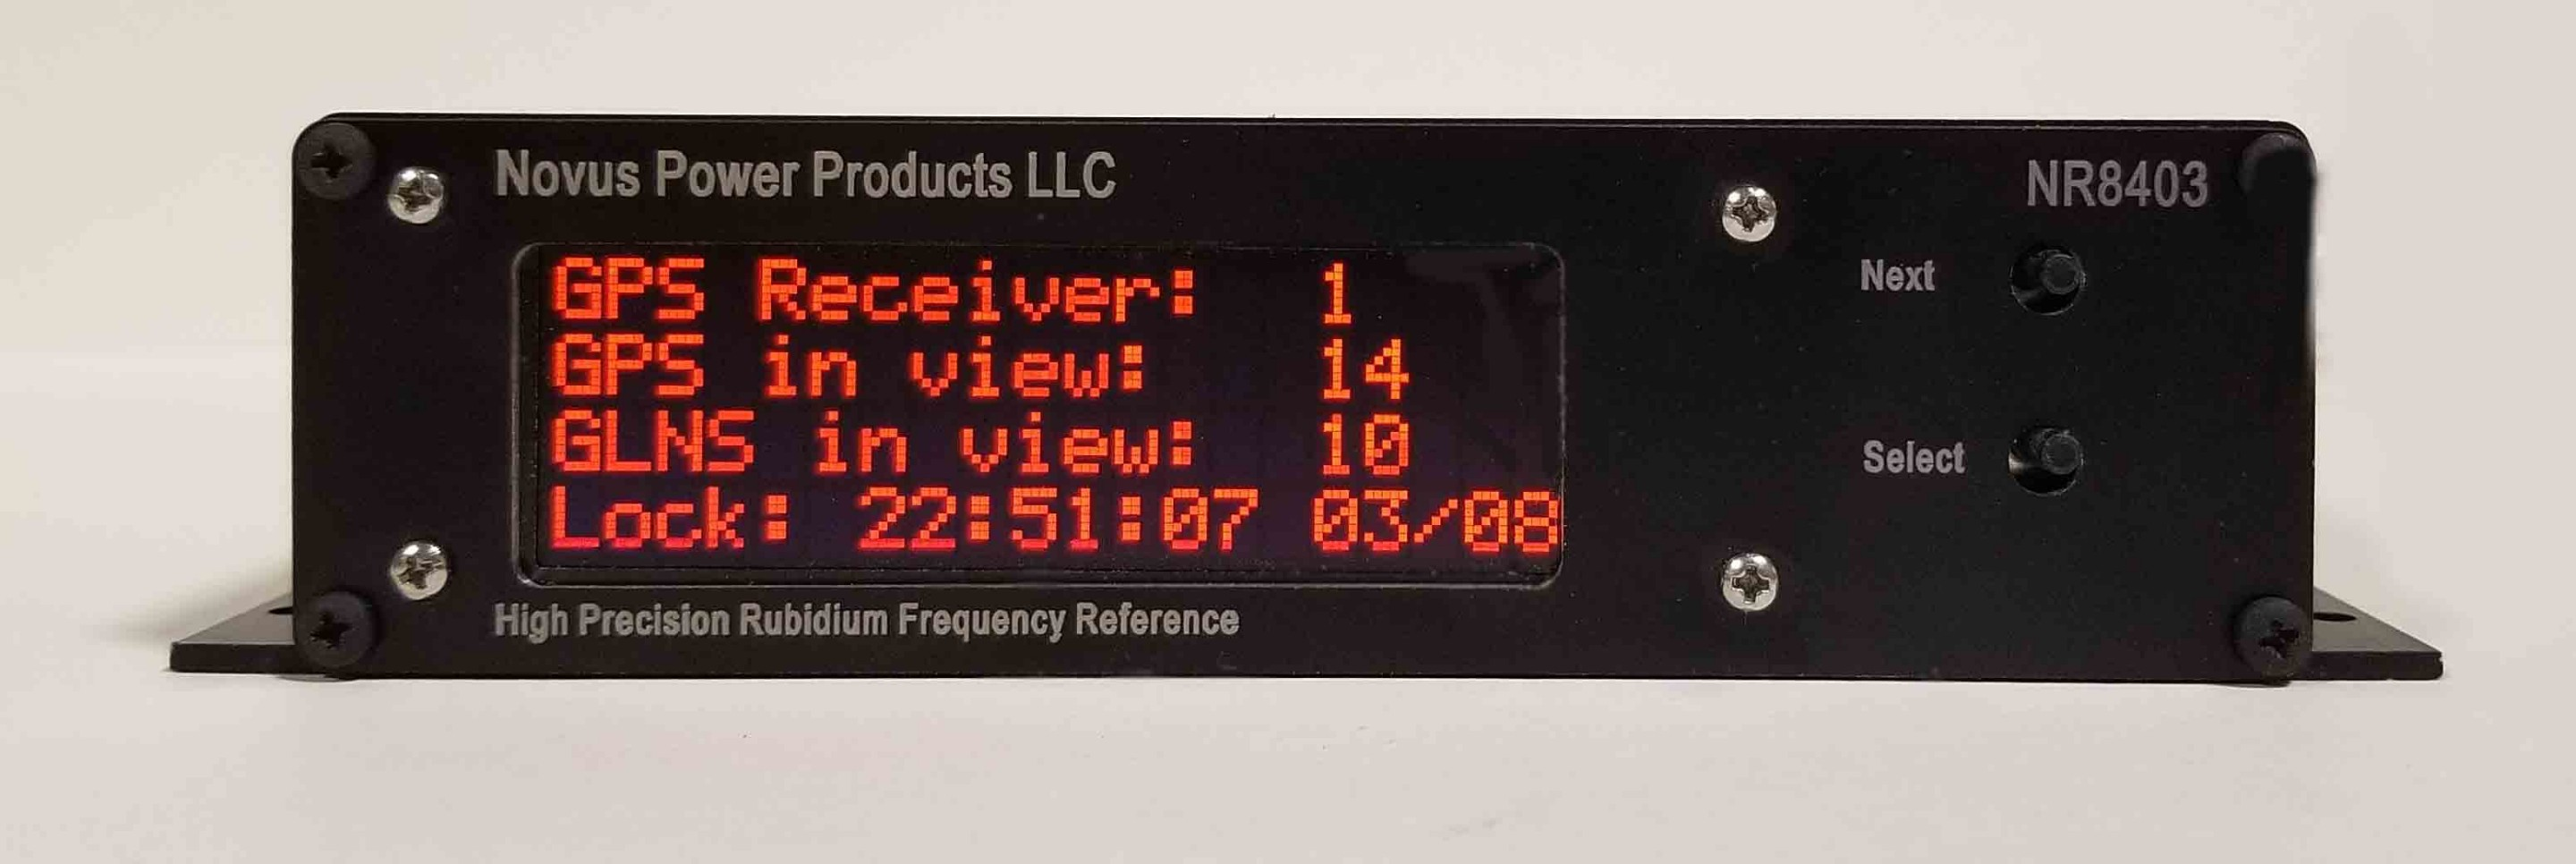 Three Channel Frequency Reference with Optional Display NR8403-O/G Image